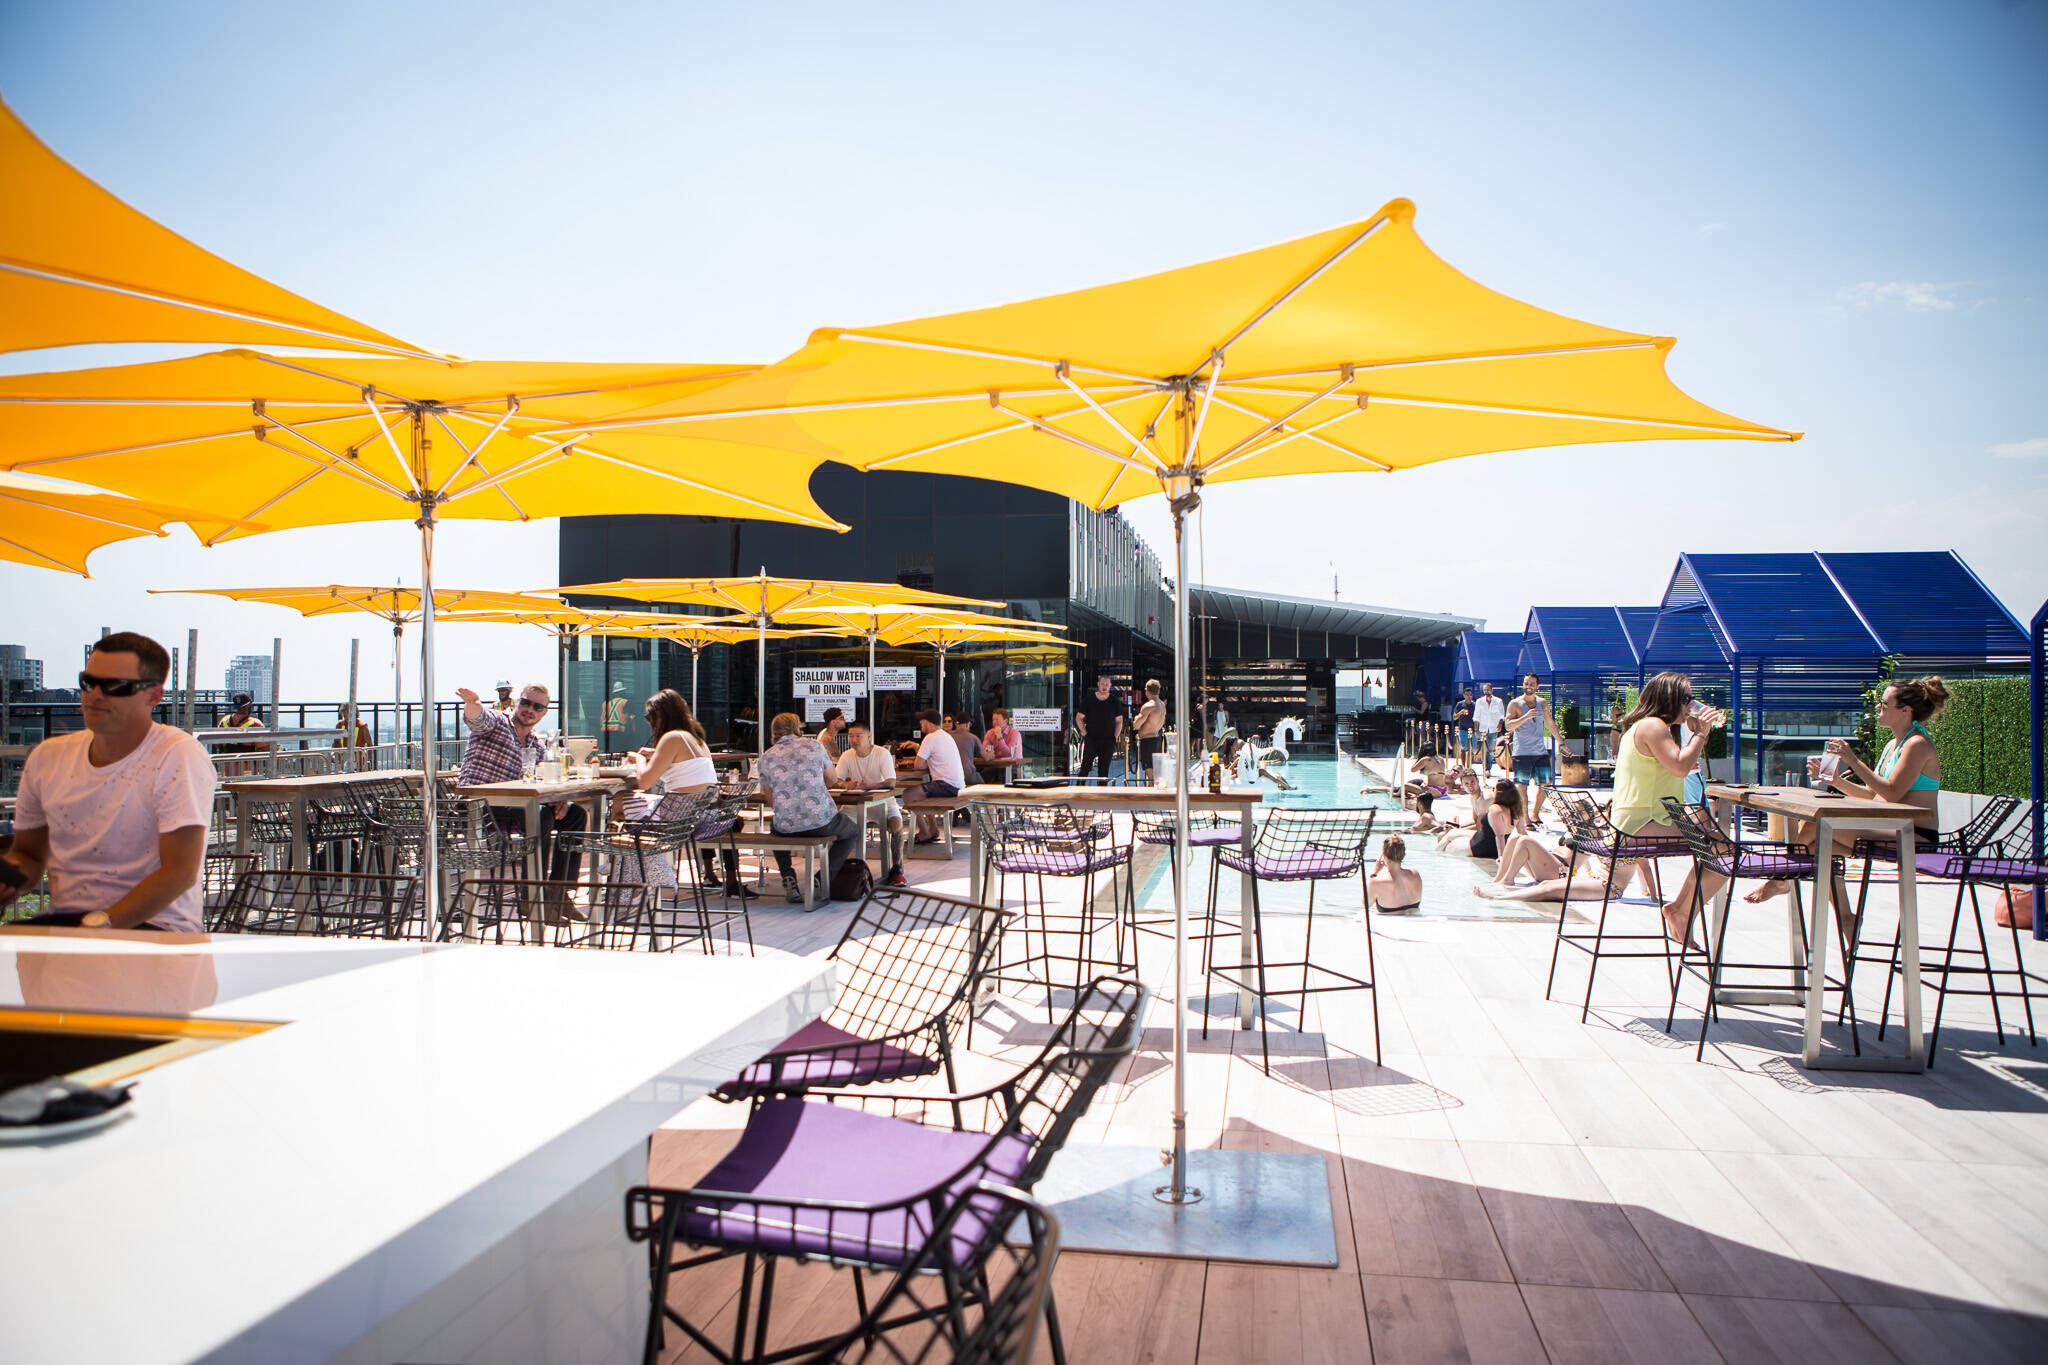 The Best Rooftop Patios In Toronto - Rooftop patios